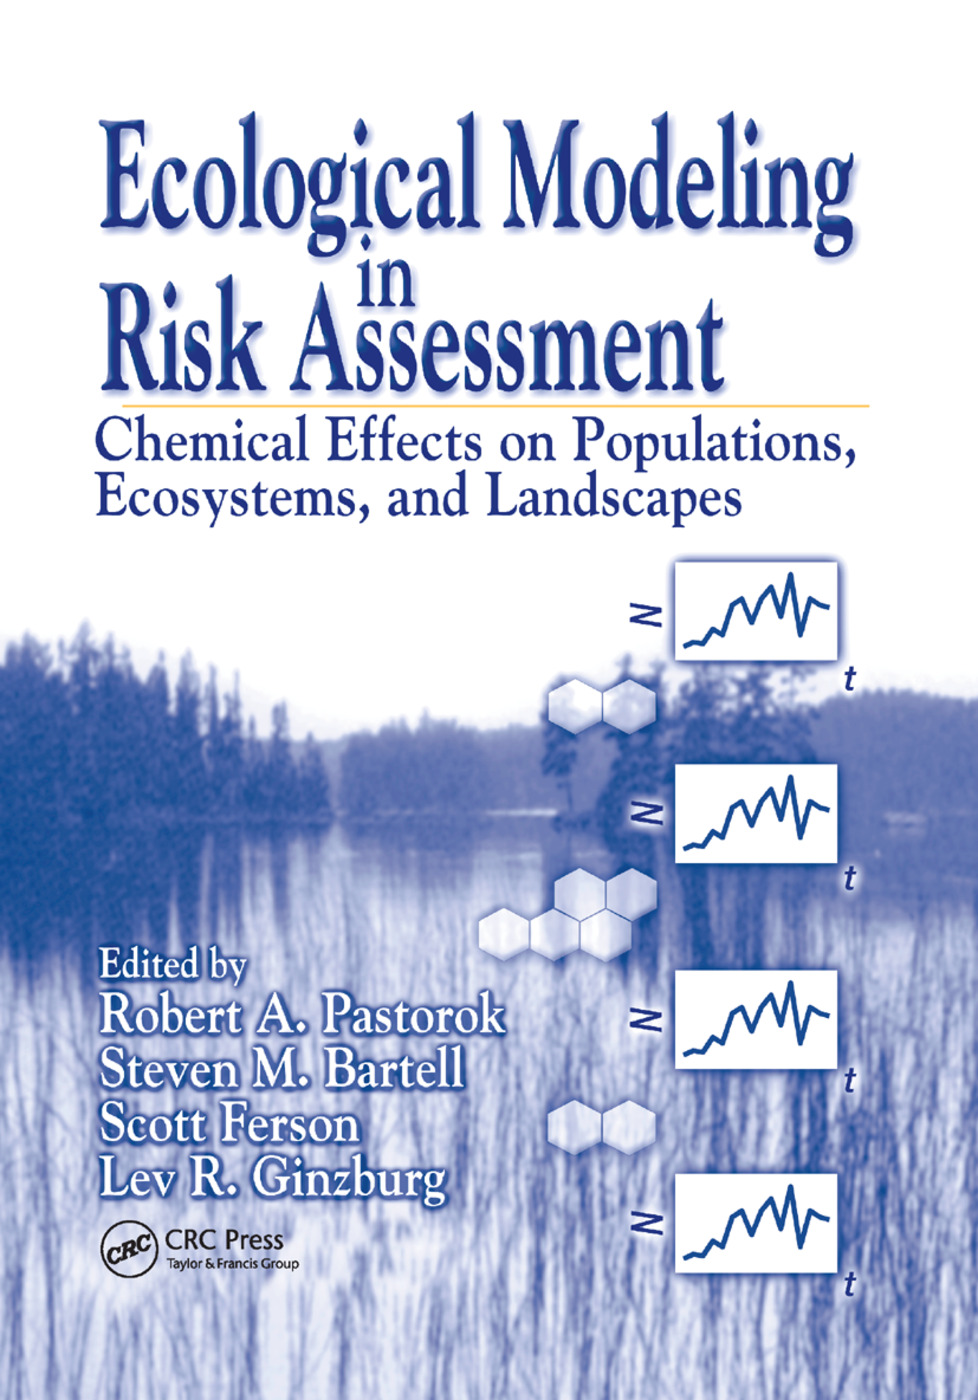 Ecological Modeling in Risk Assessment: Chemical Effects on Populations, Ecosystems, and Landscapes, 1st Edition (Paperback) book cover